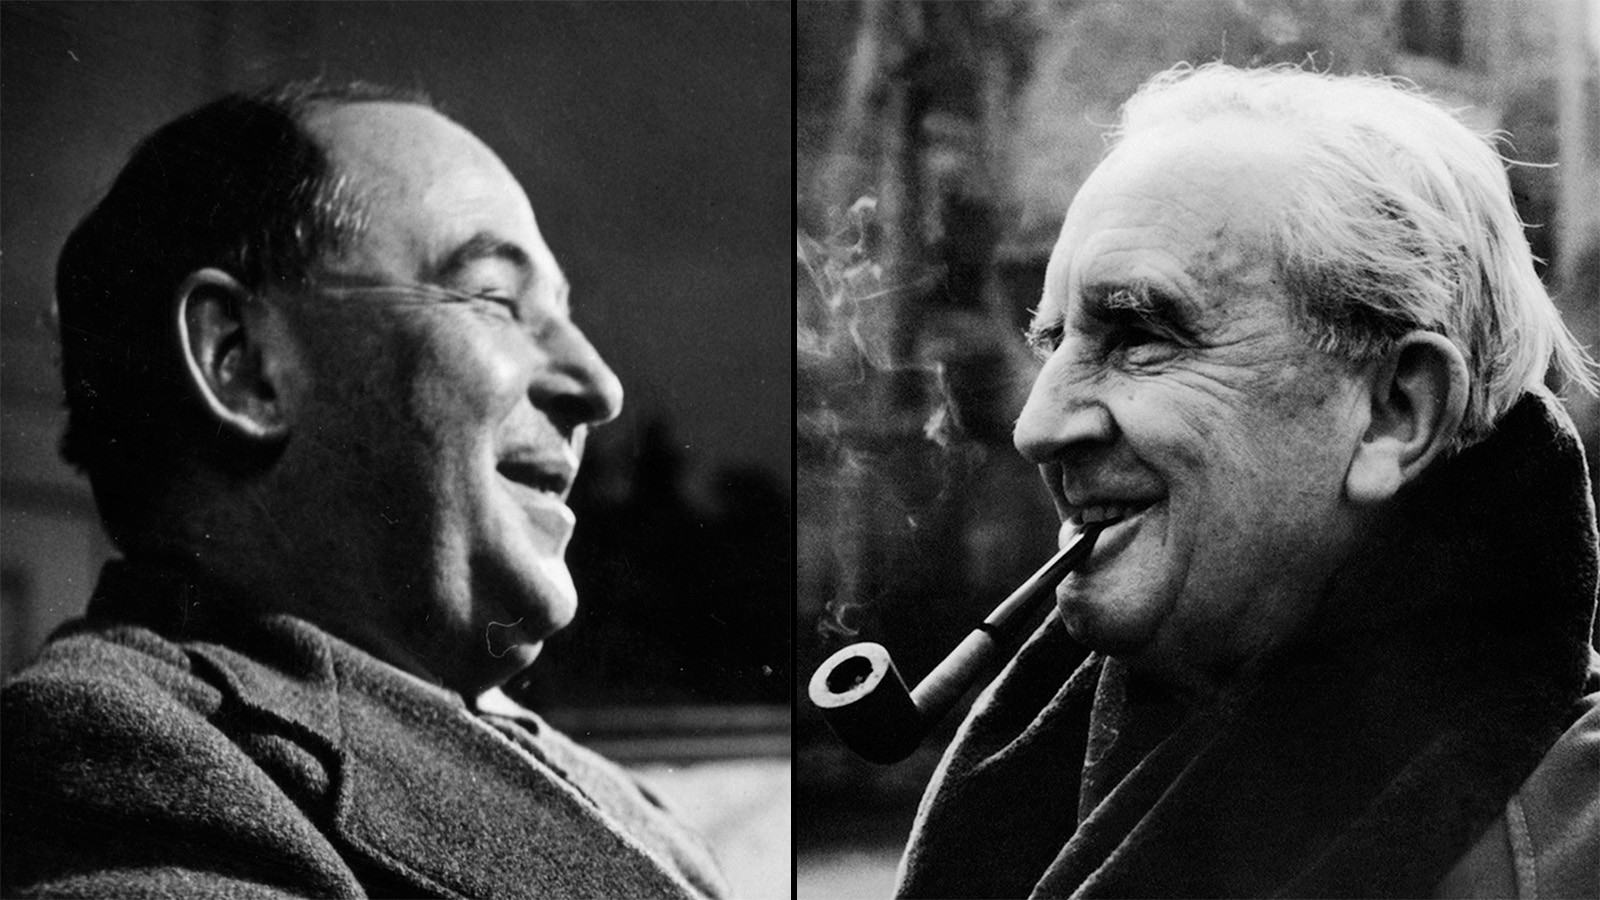 C S Lewis and J R R Tolkien